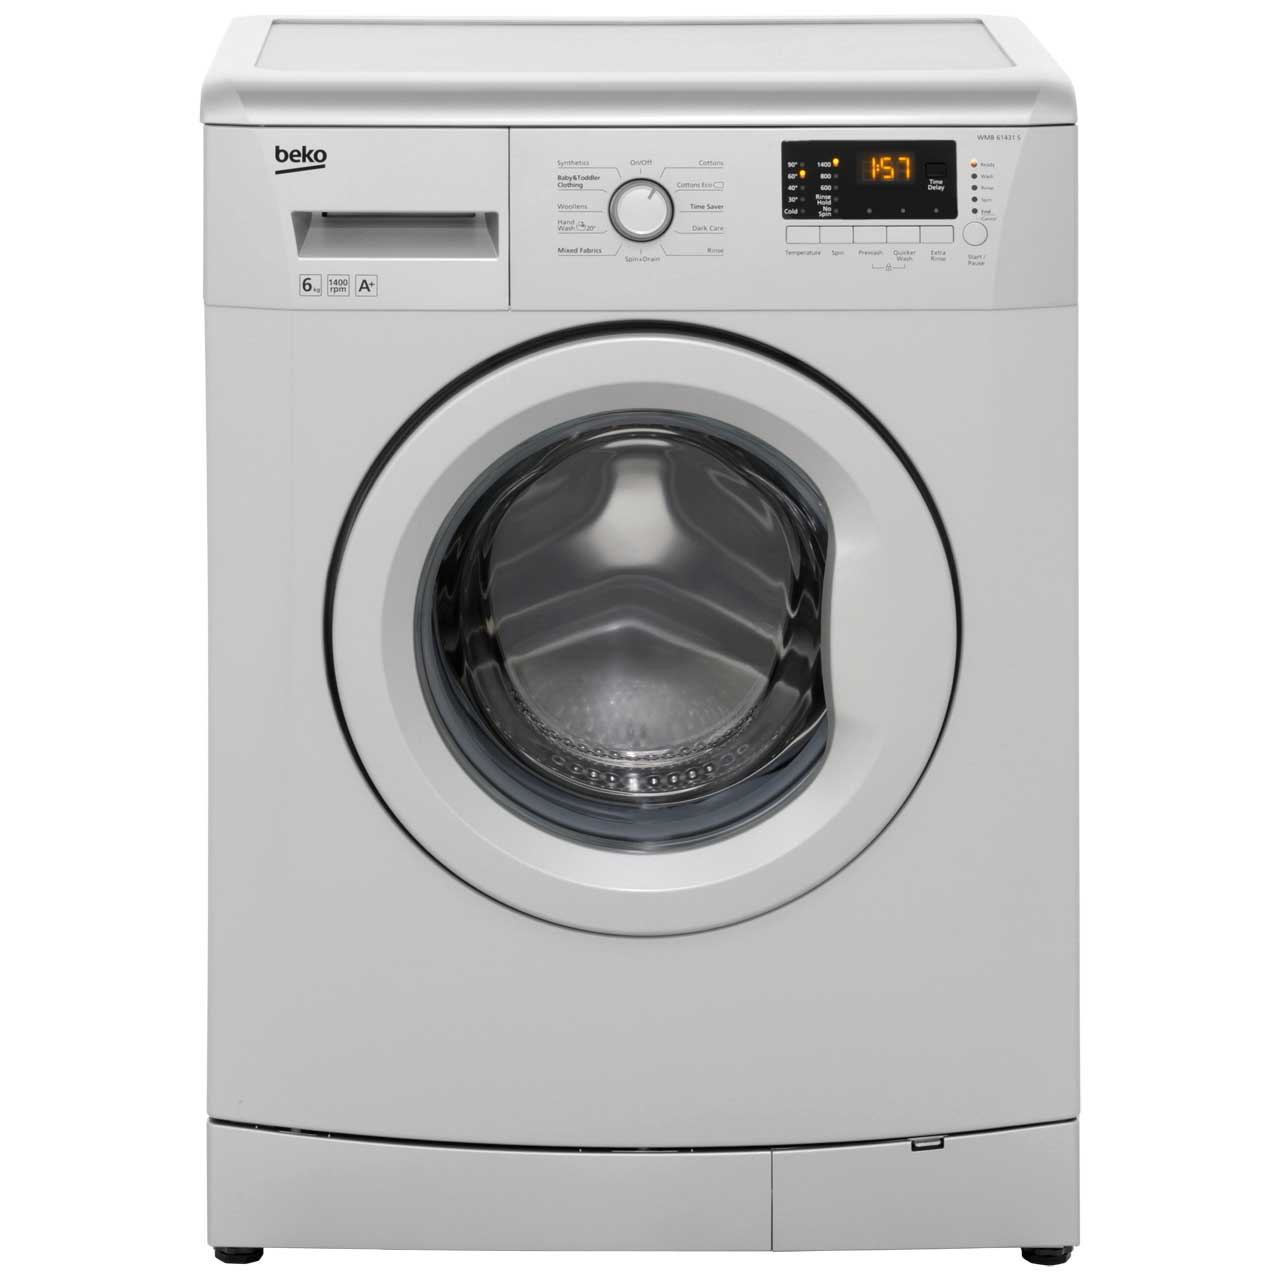 Beko WMB61431S 6Kg Washing Machine with 1400 rpm - Silver